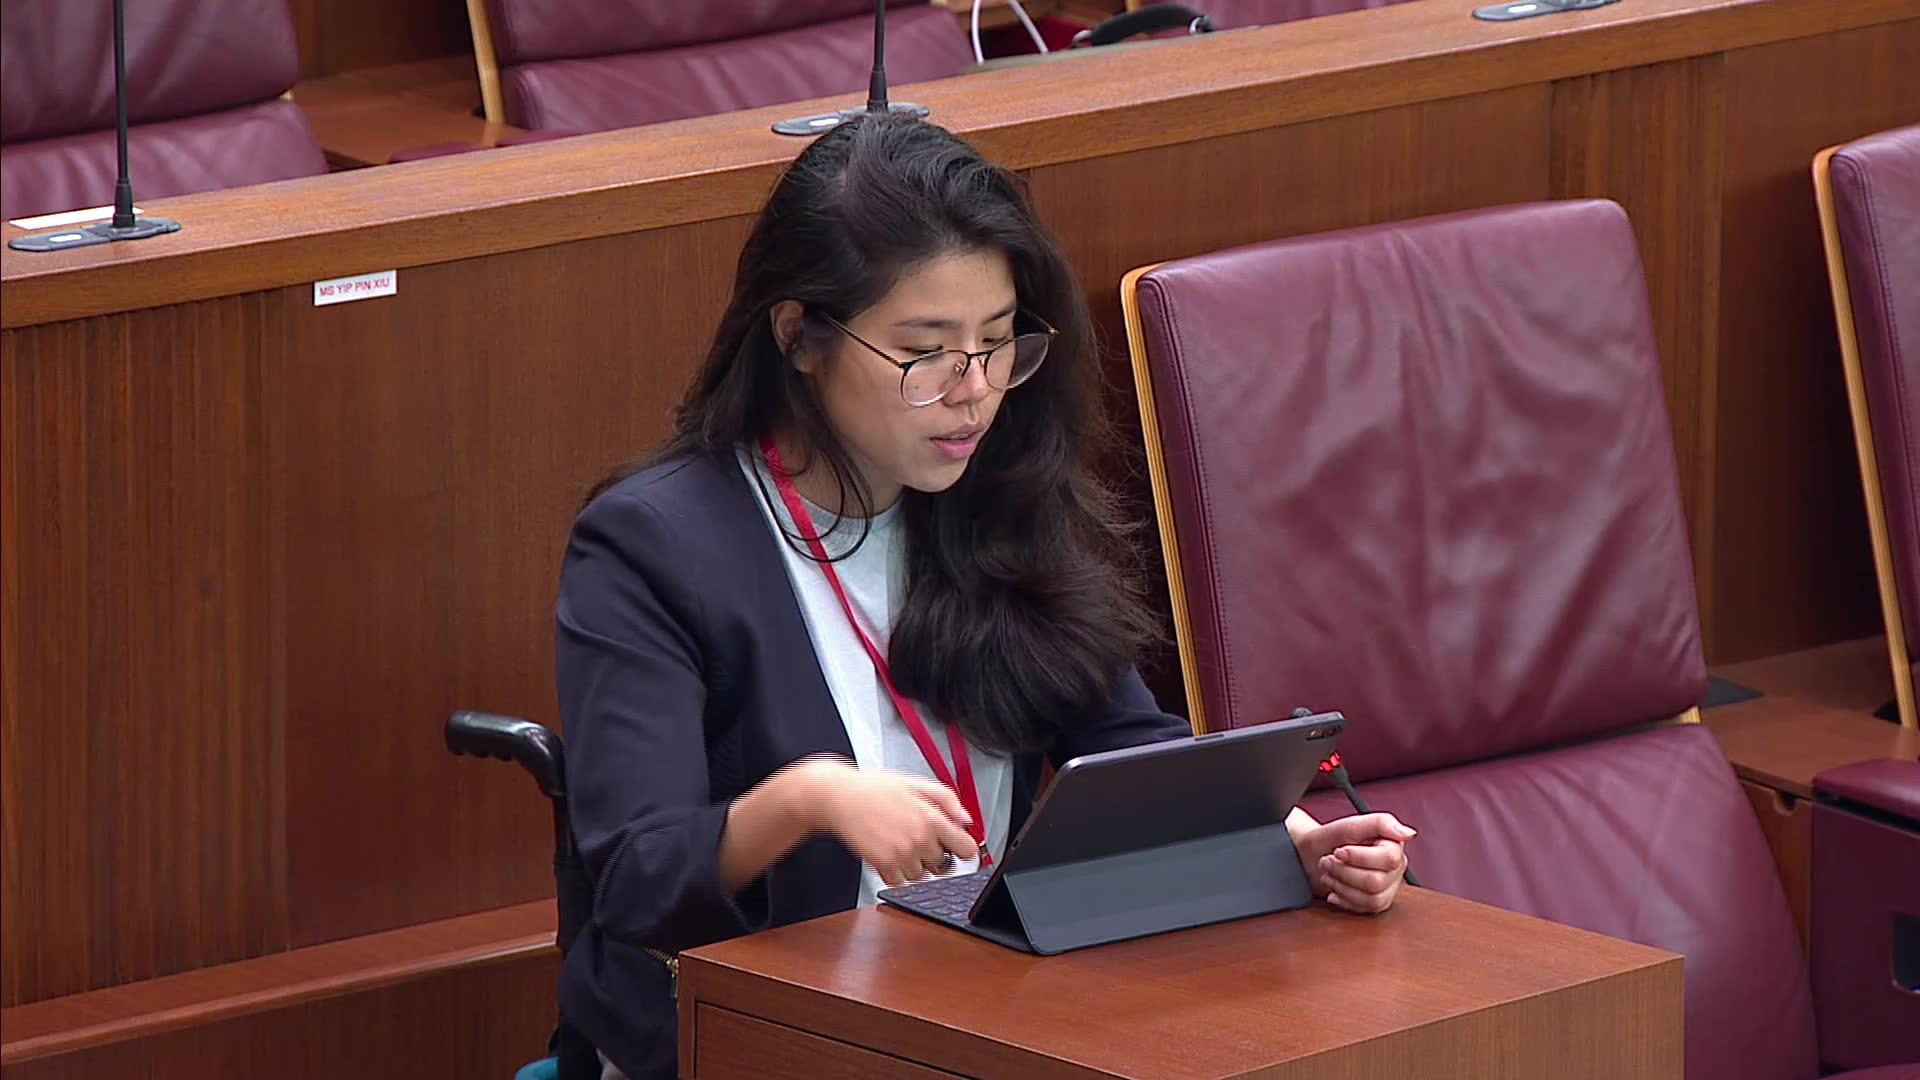 Solidarity Budget: Yip Pin Xiu on additional support measures in response to COVID-19 pandemic